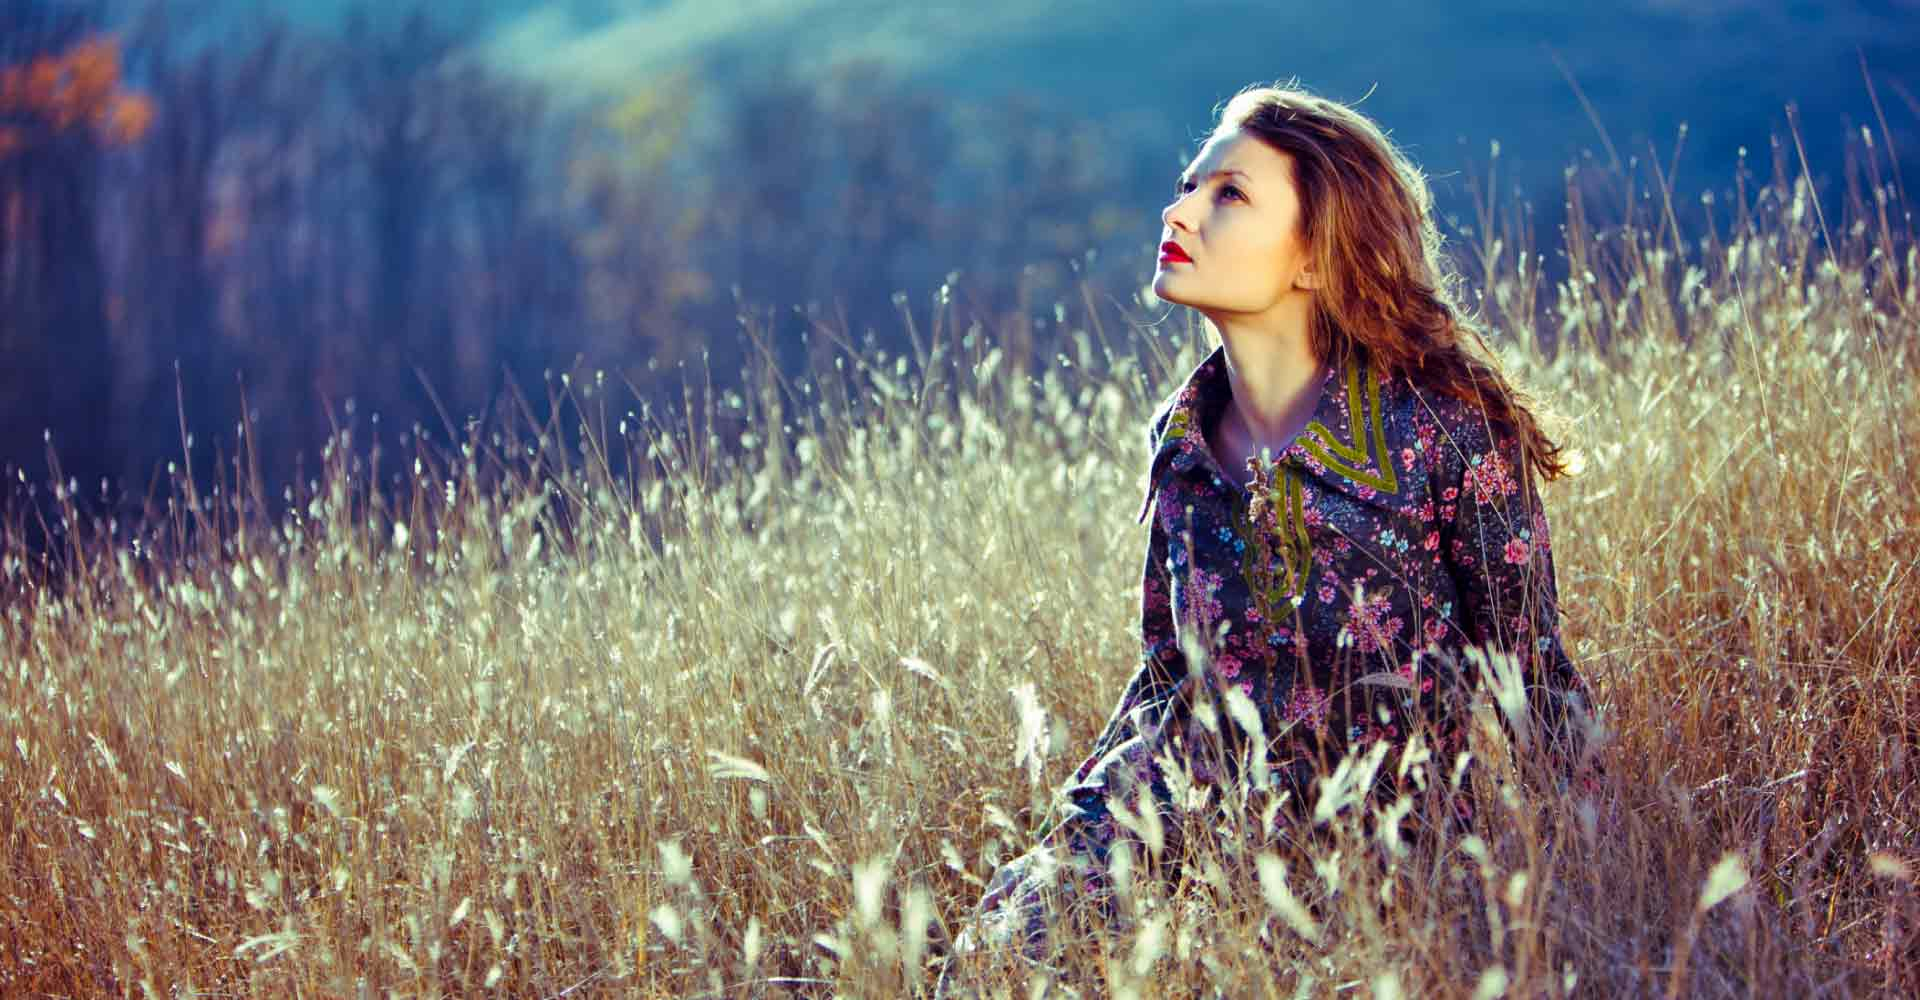 young woman in grassy field looking up and pondering life